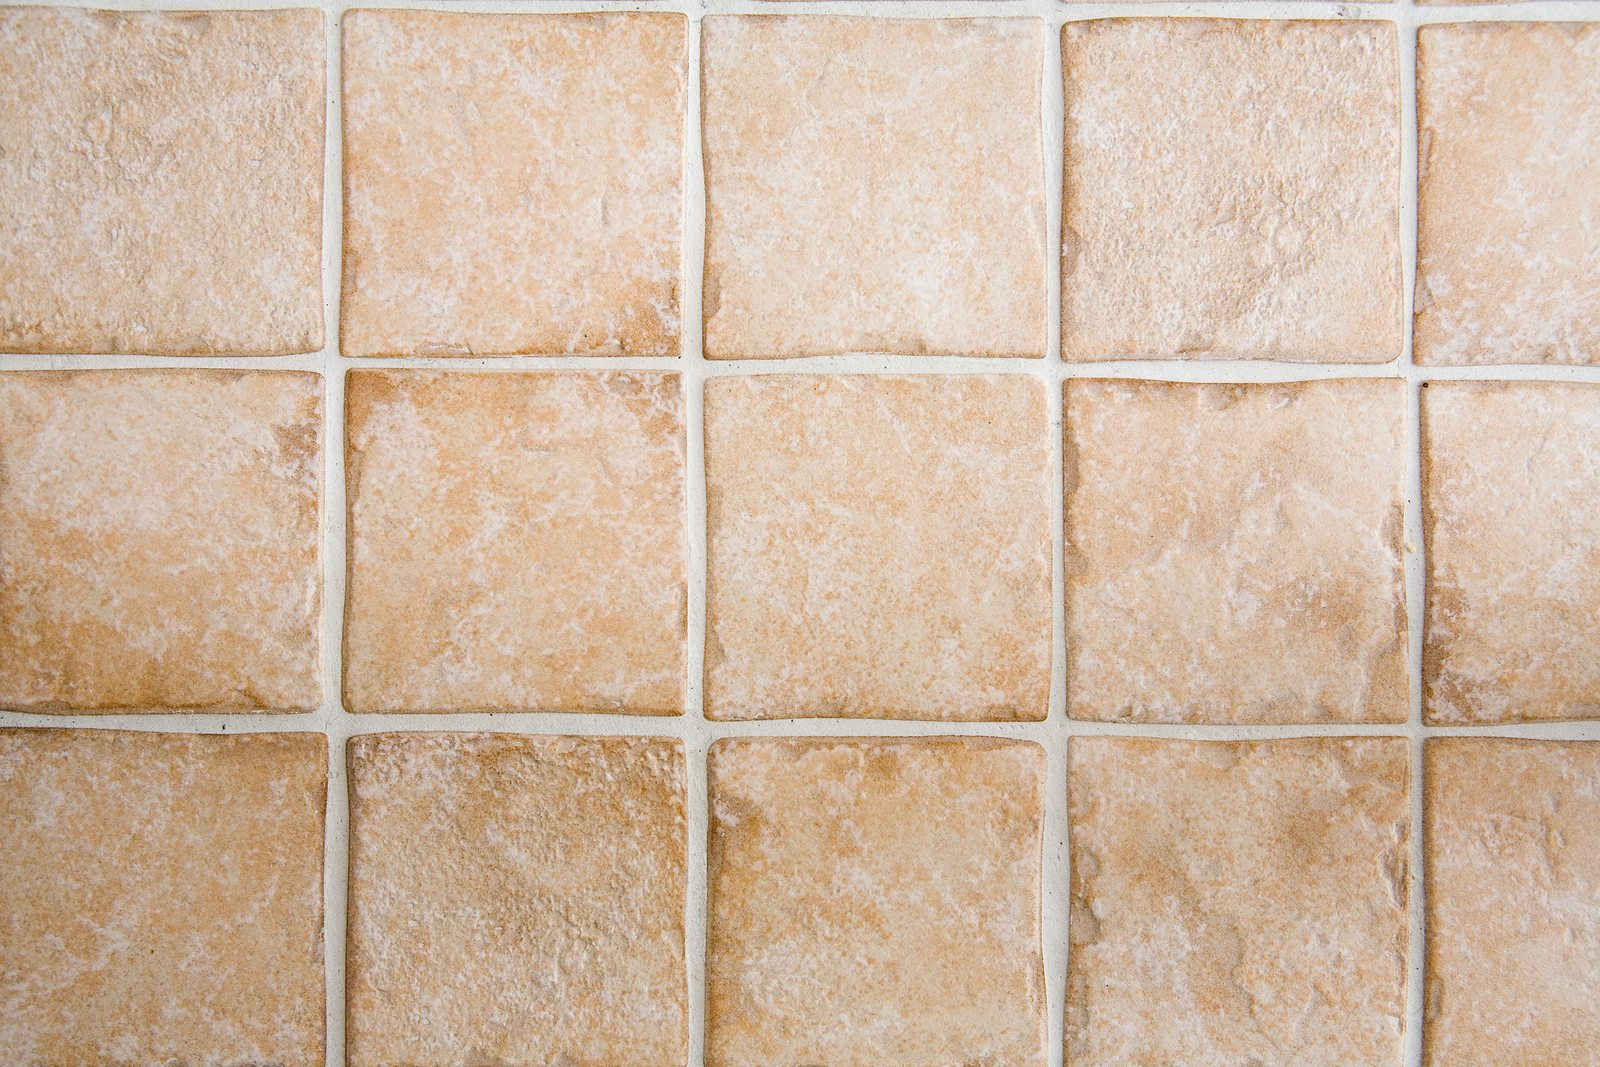 Numerous problems can arise in tile flooring, but we provide multiple remedies for these commons problems